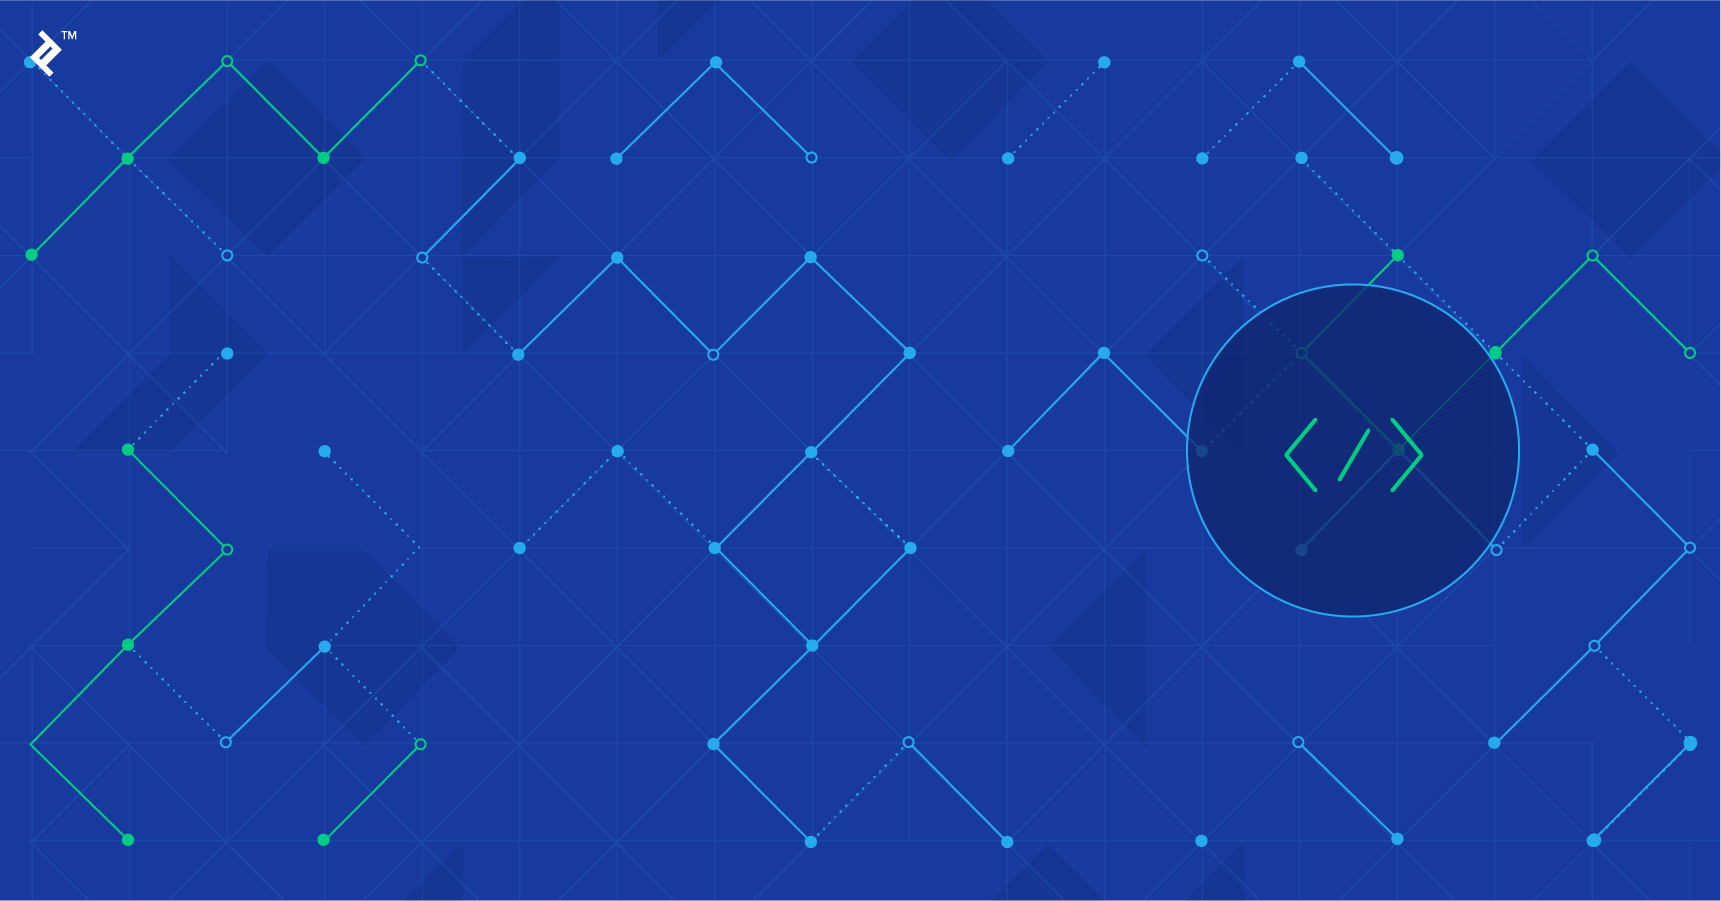 VTK: A Powerful Open Source Data Visualization Tool | Toptal